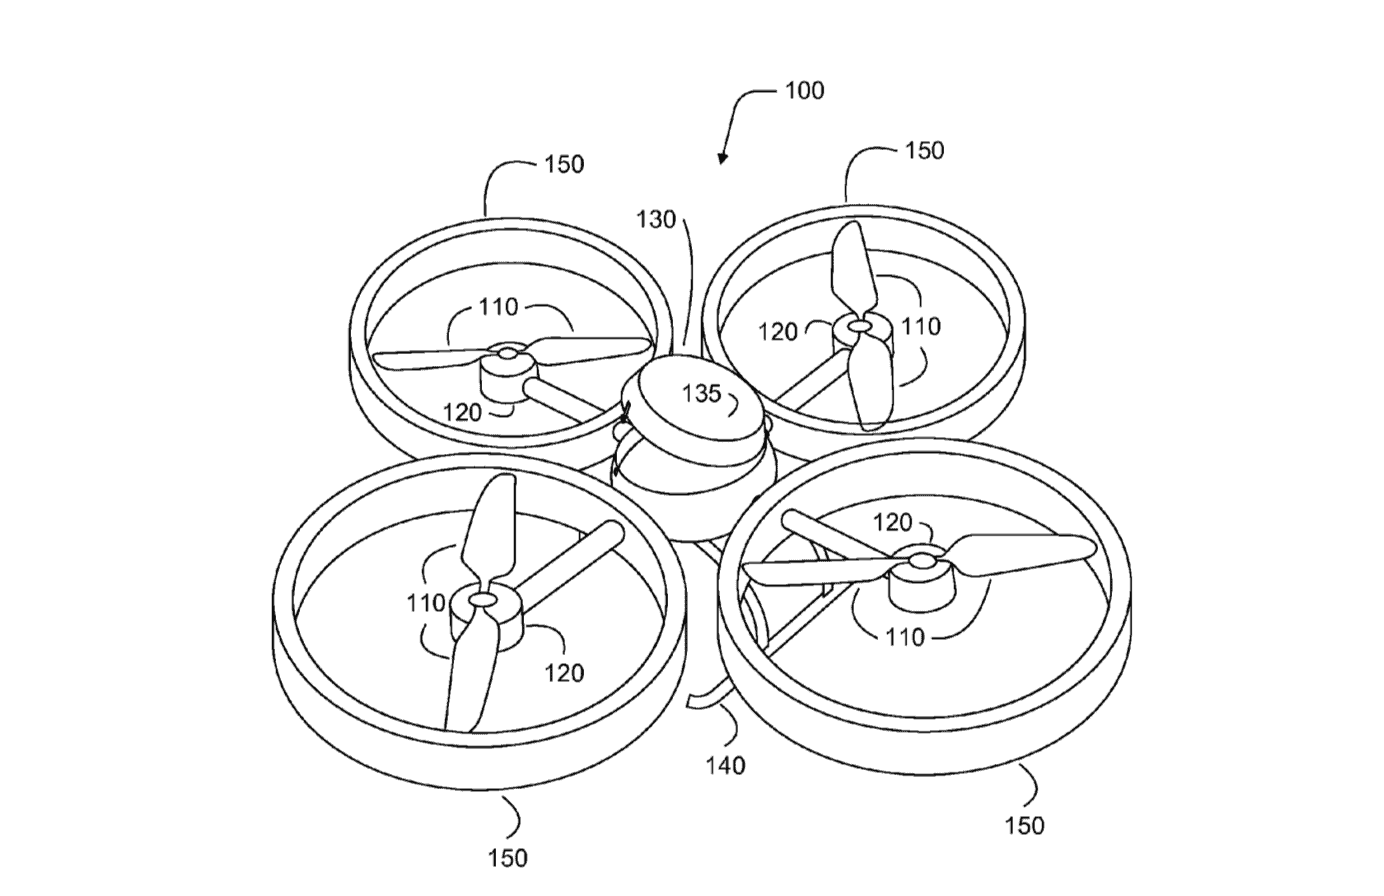 Google medical aid drone patent